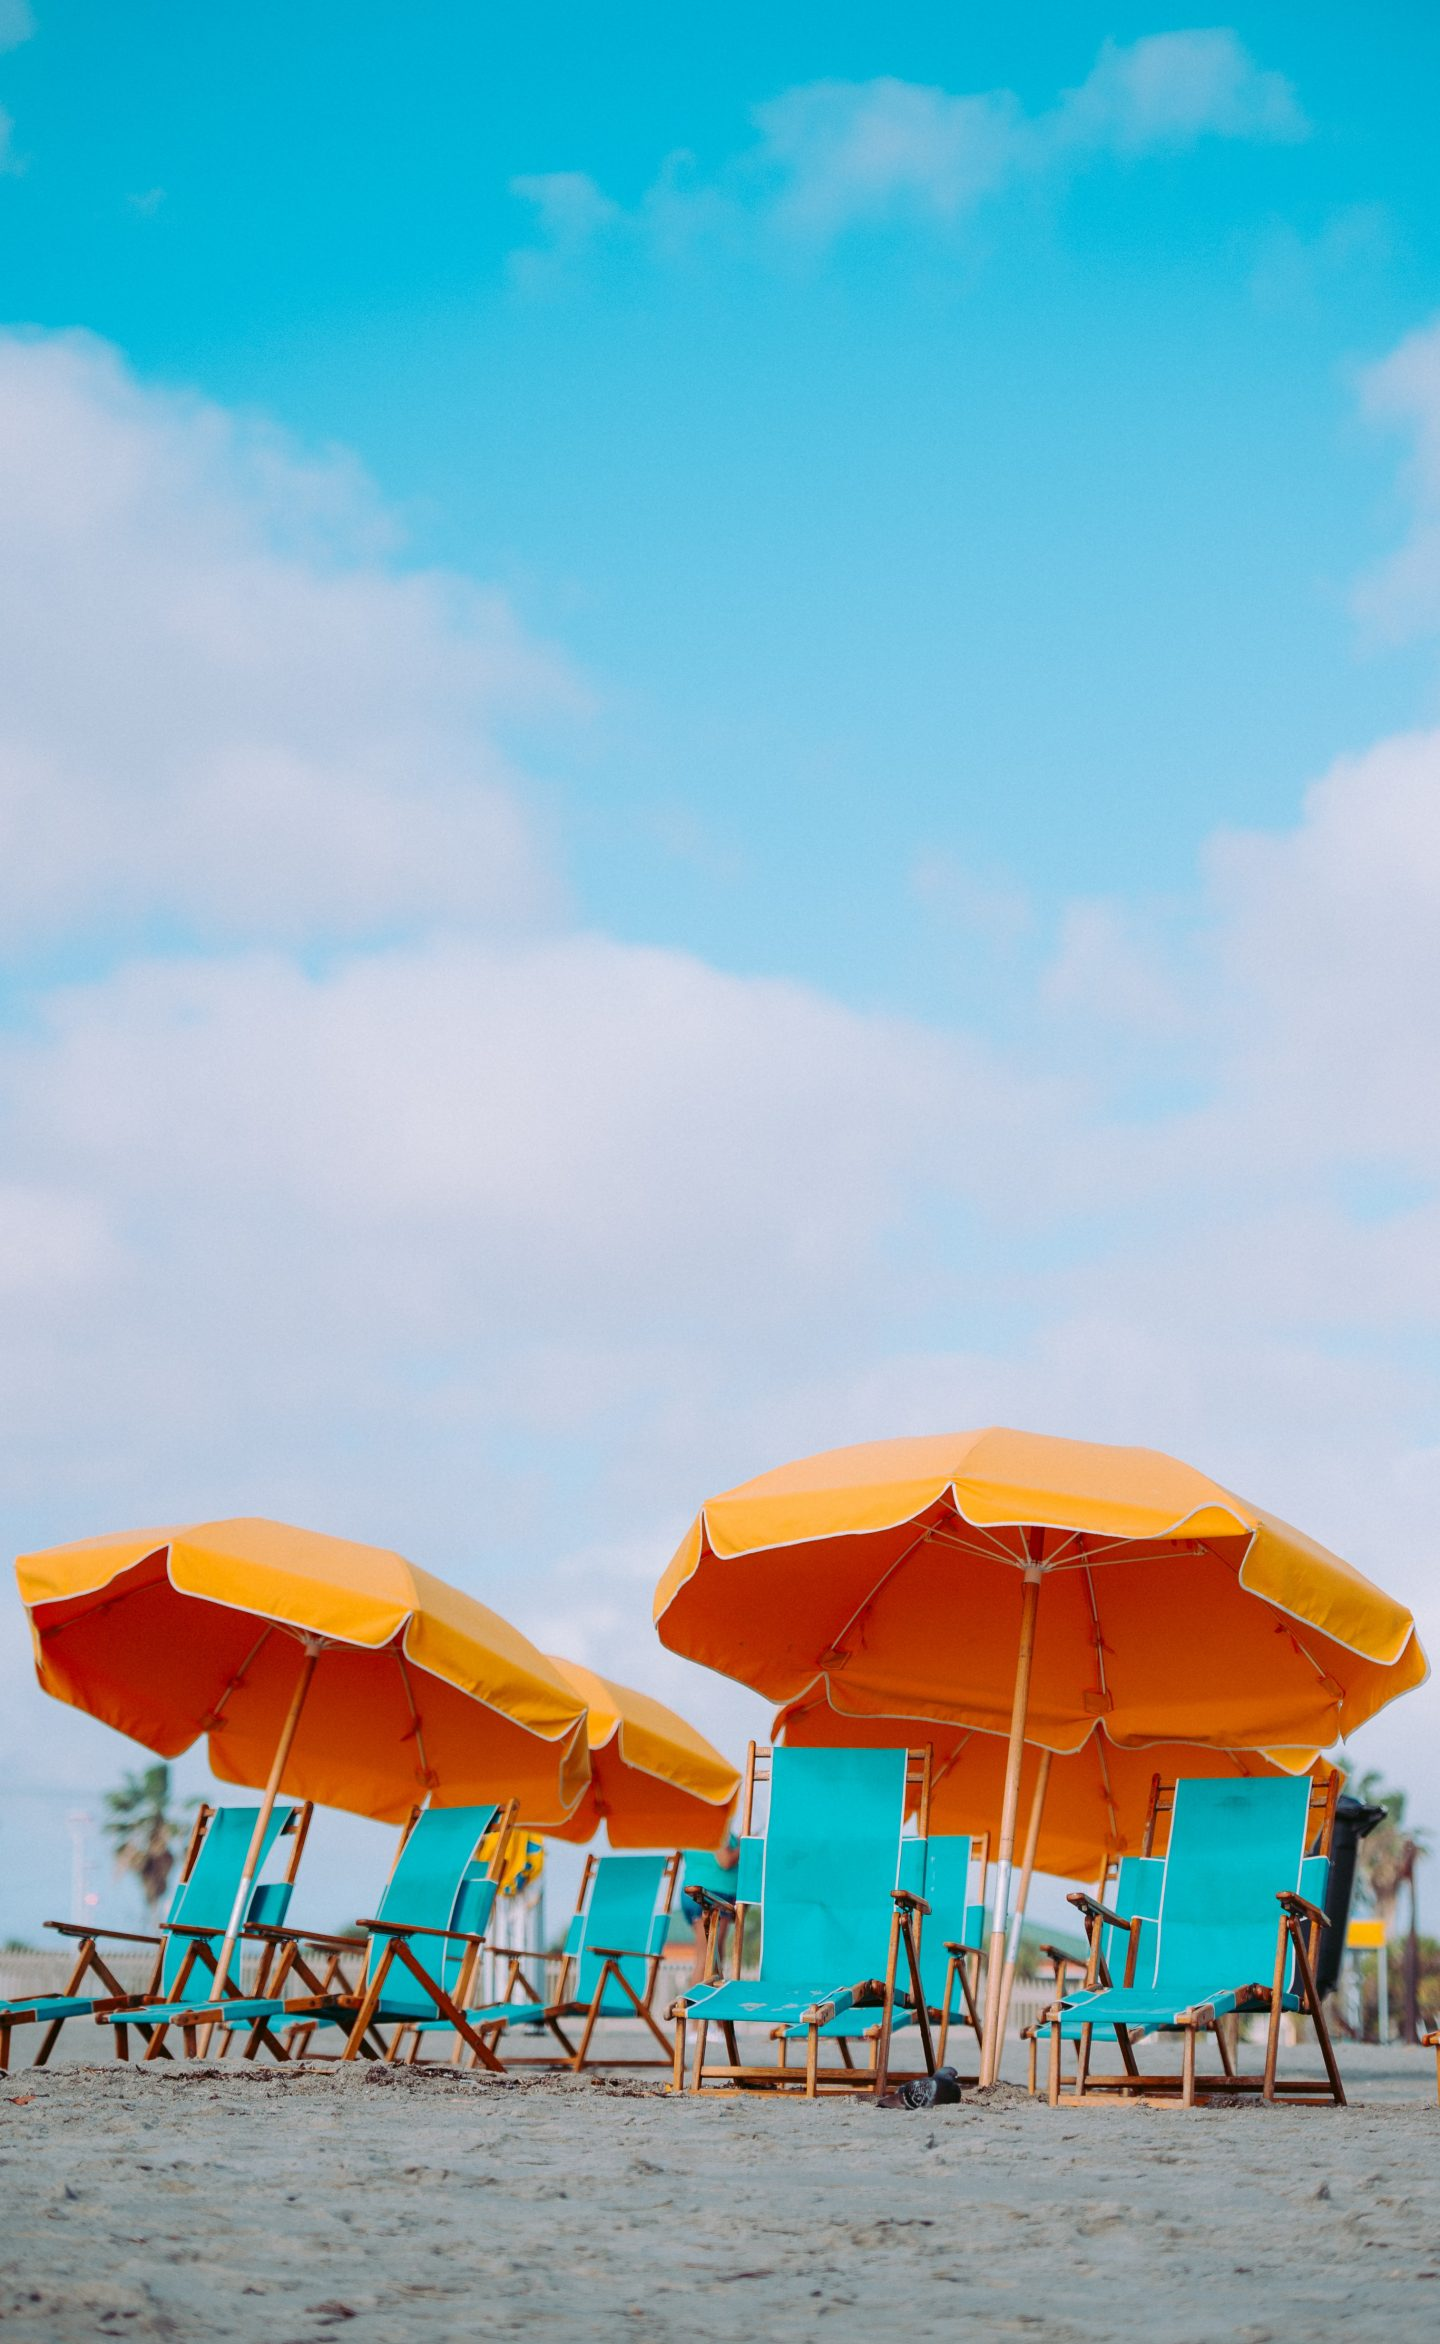 a beach with blue chairs and bright orange umbrellas, blue sky with clouds